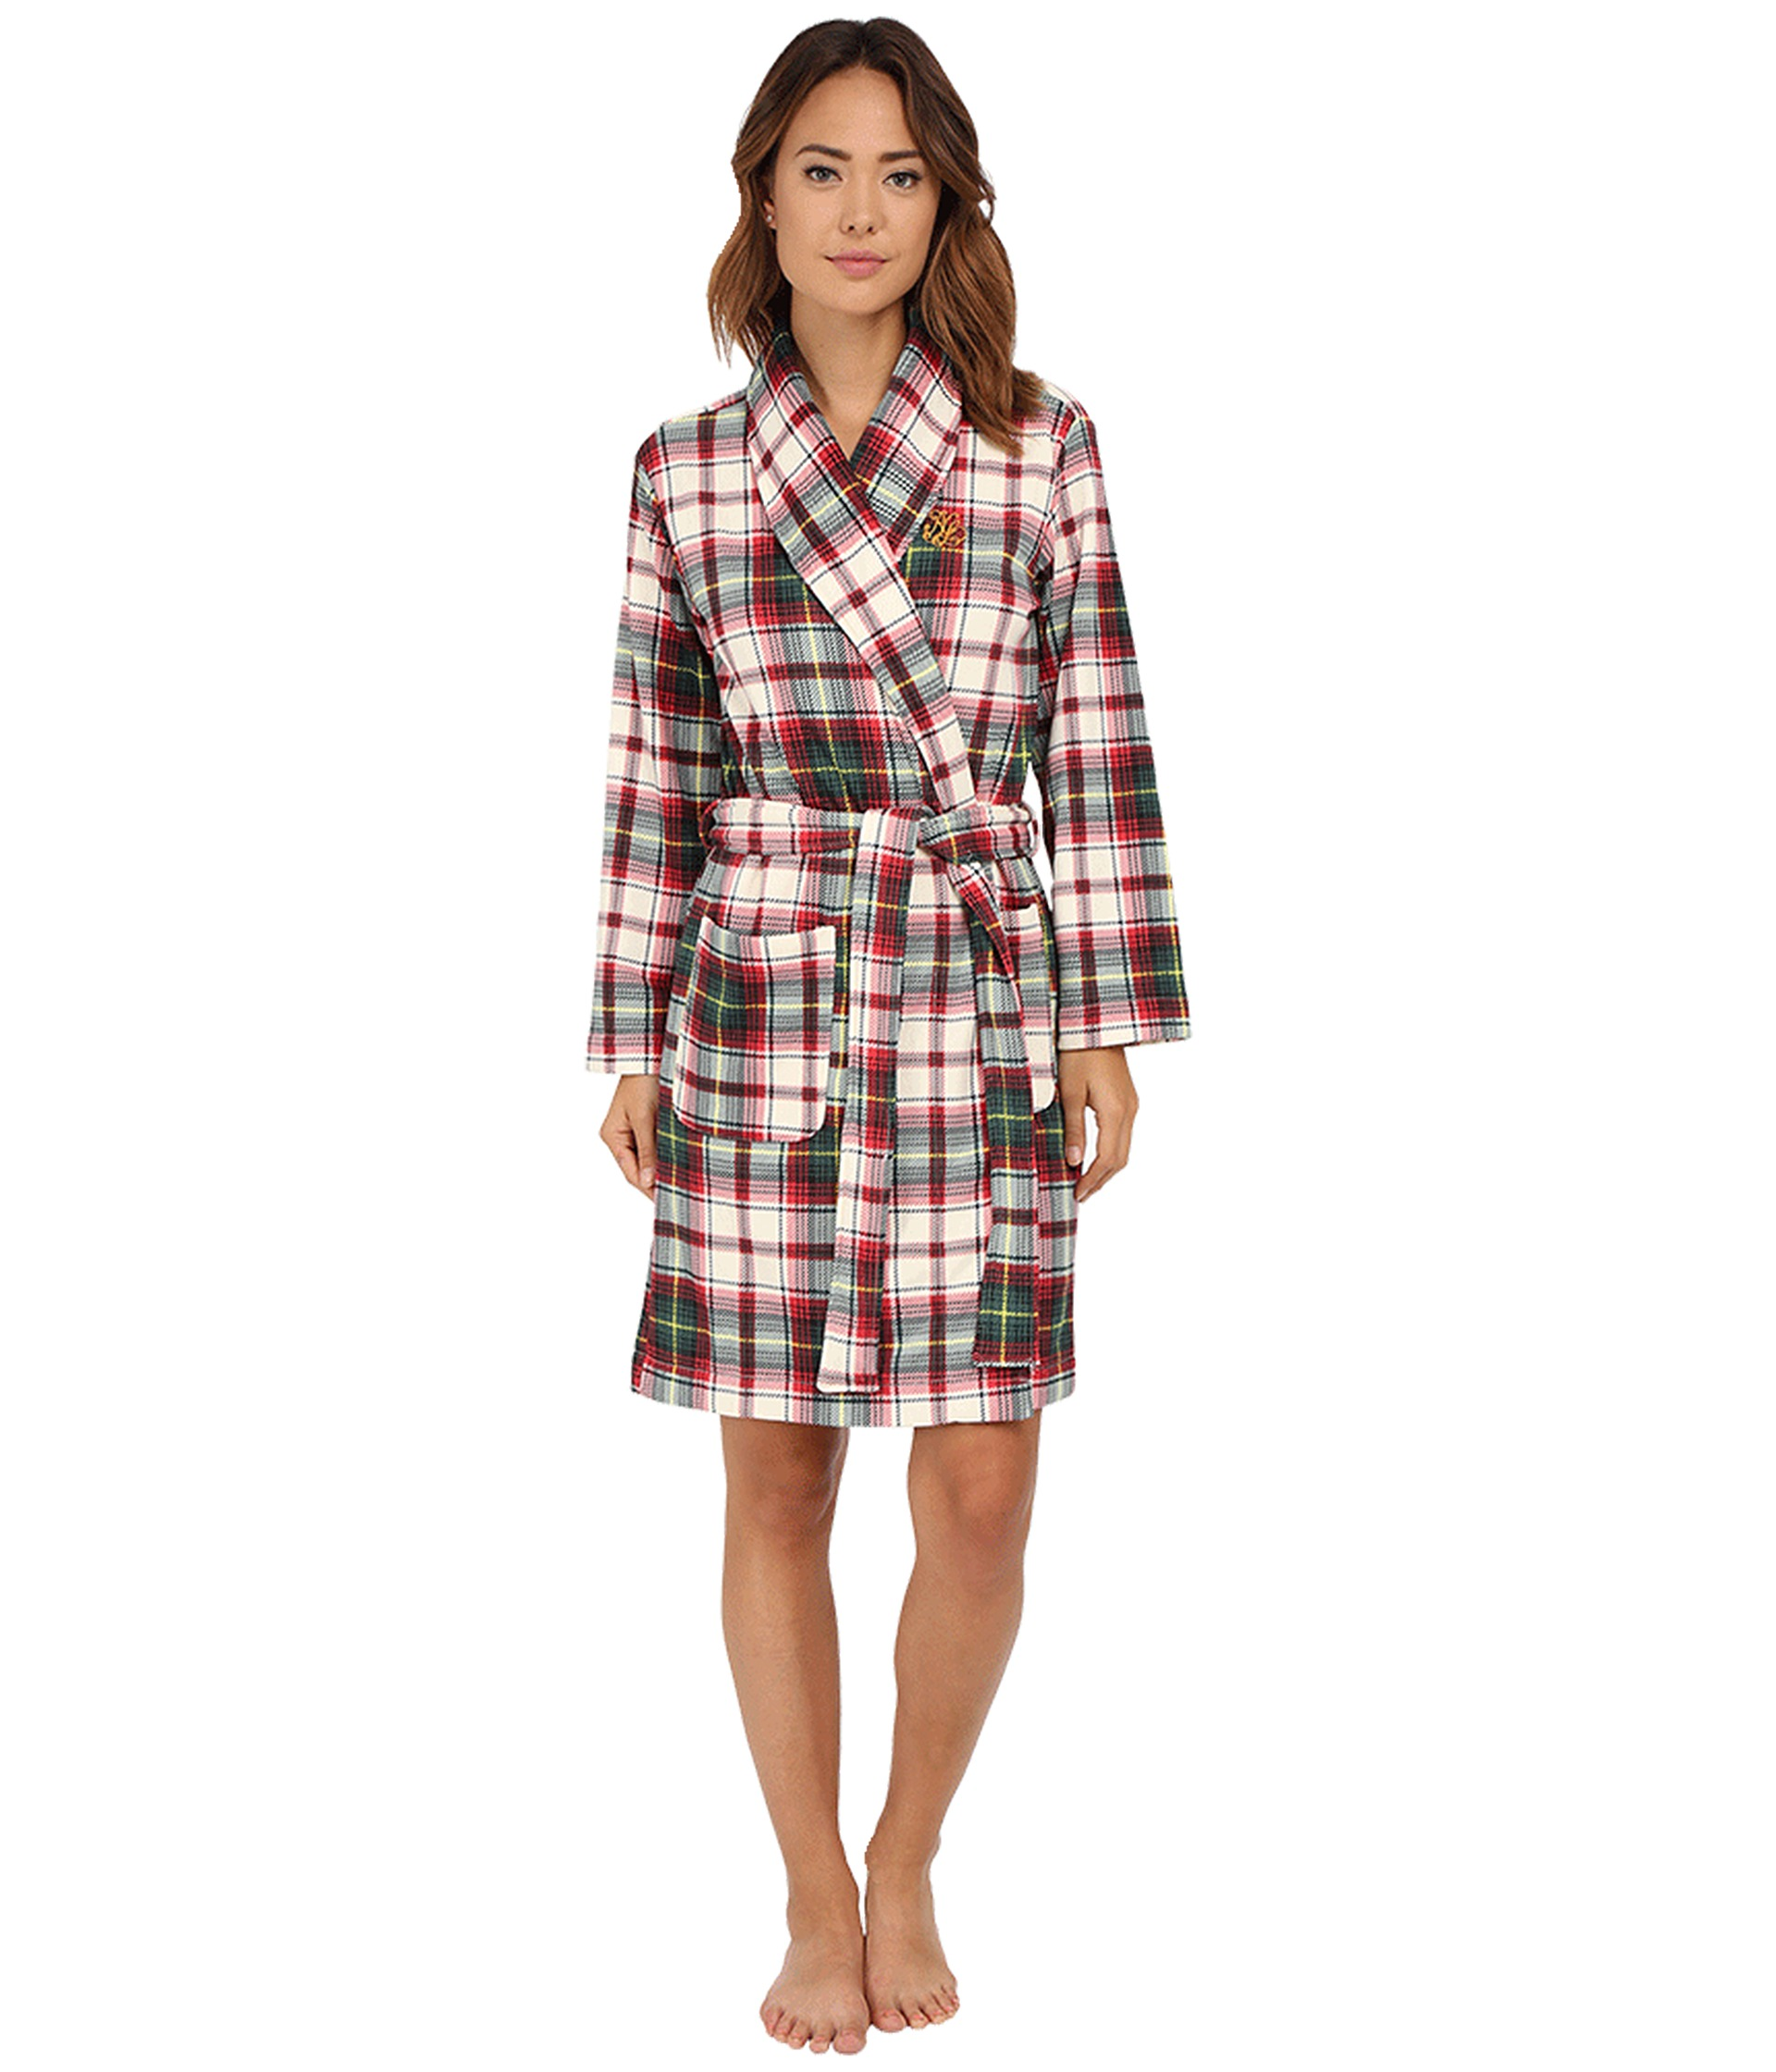 lauren by ralph lauren folded beaufort fleece short robe mcintyre plaid cream red multi zappos. Black Bedroom Furniture Sets. Home Design Ideas